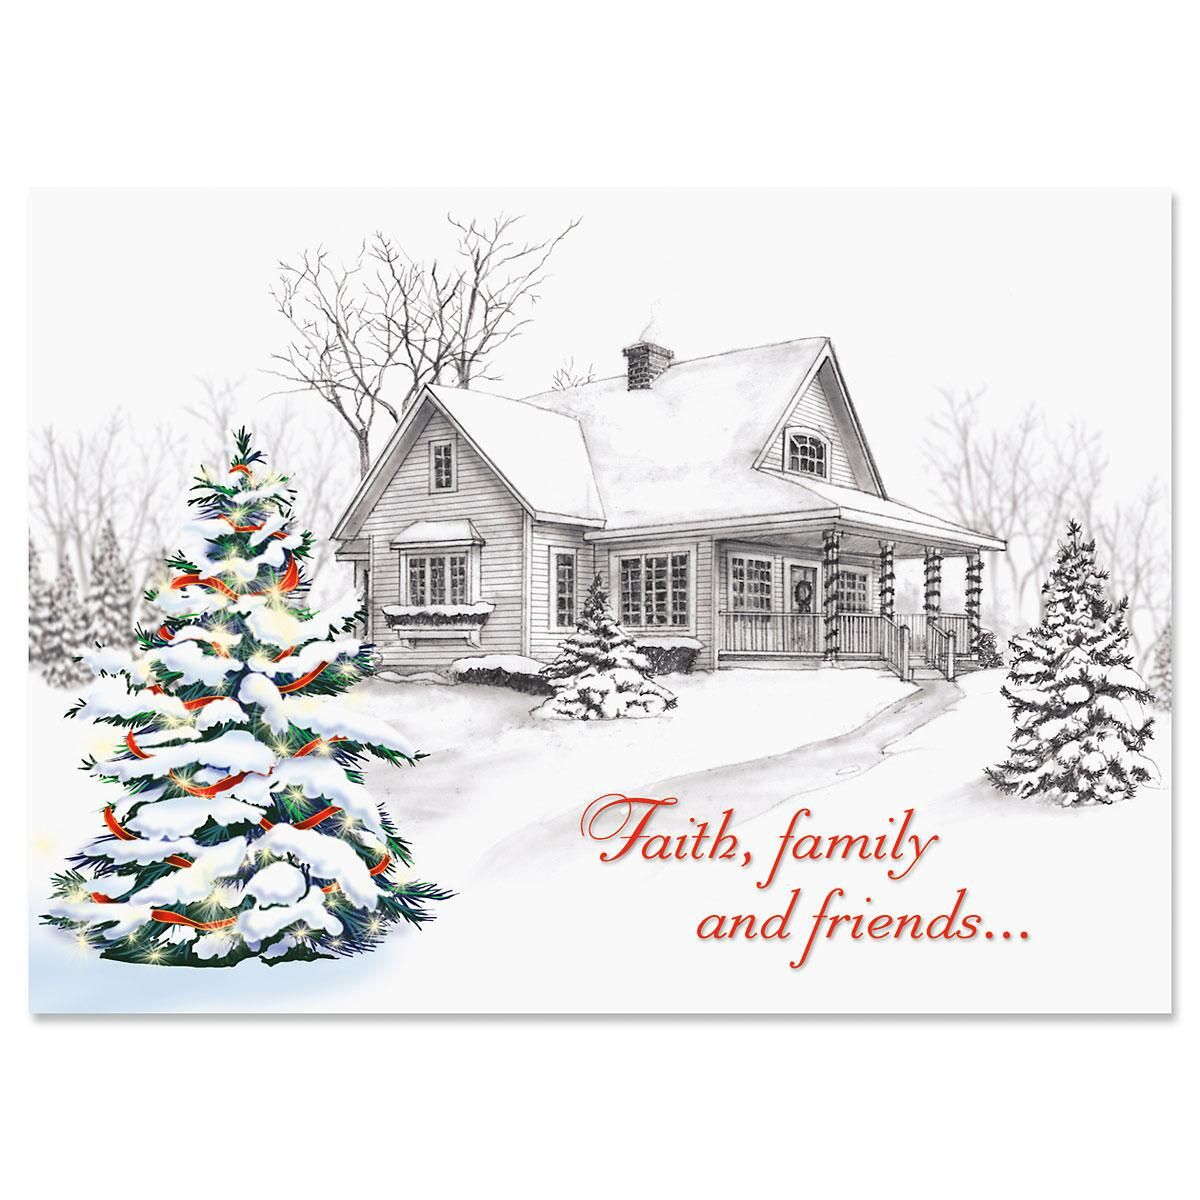 Winter Home Nonpersonalized Christmas Cards - Set of 18